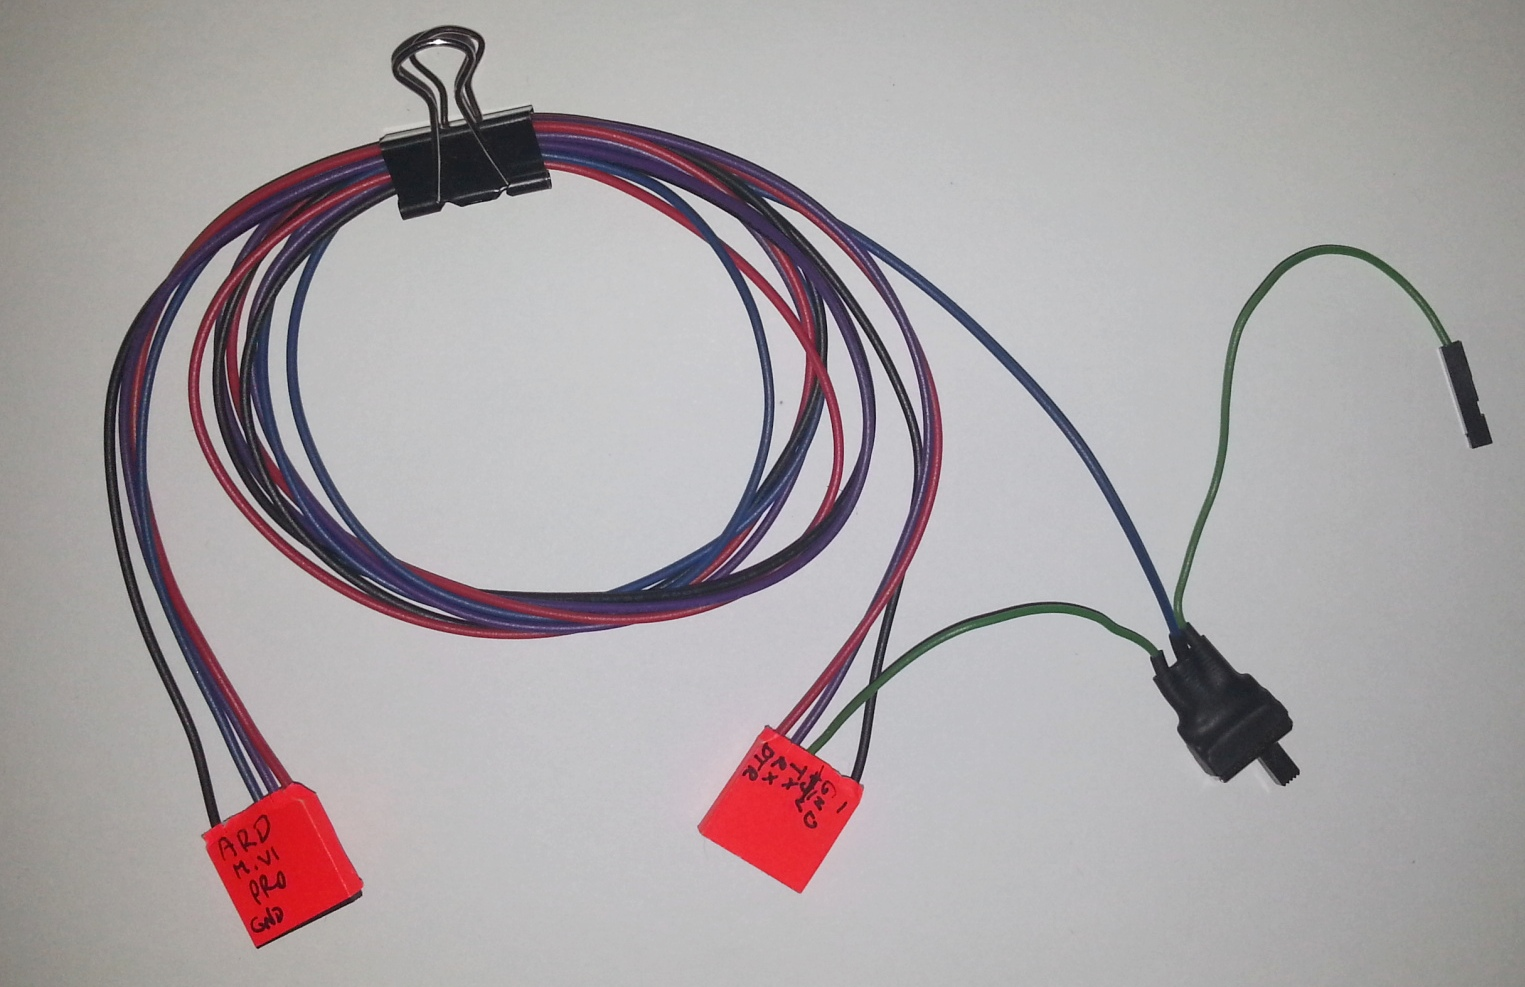 Dangerous Prototypes Picaxe Serial Cable Wiring In Addition Pc Plc Programming Photo